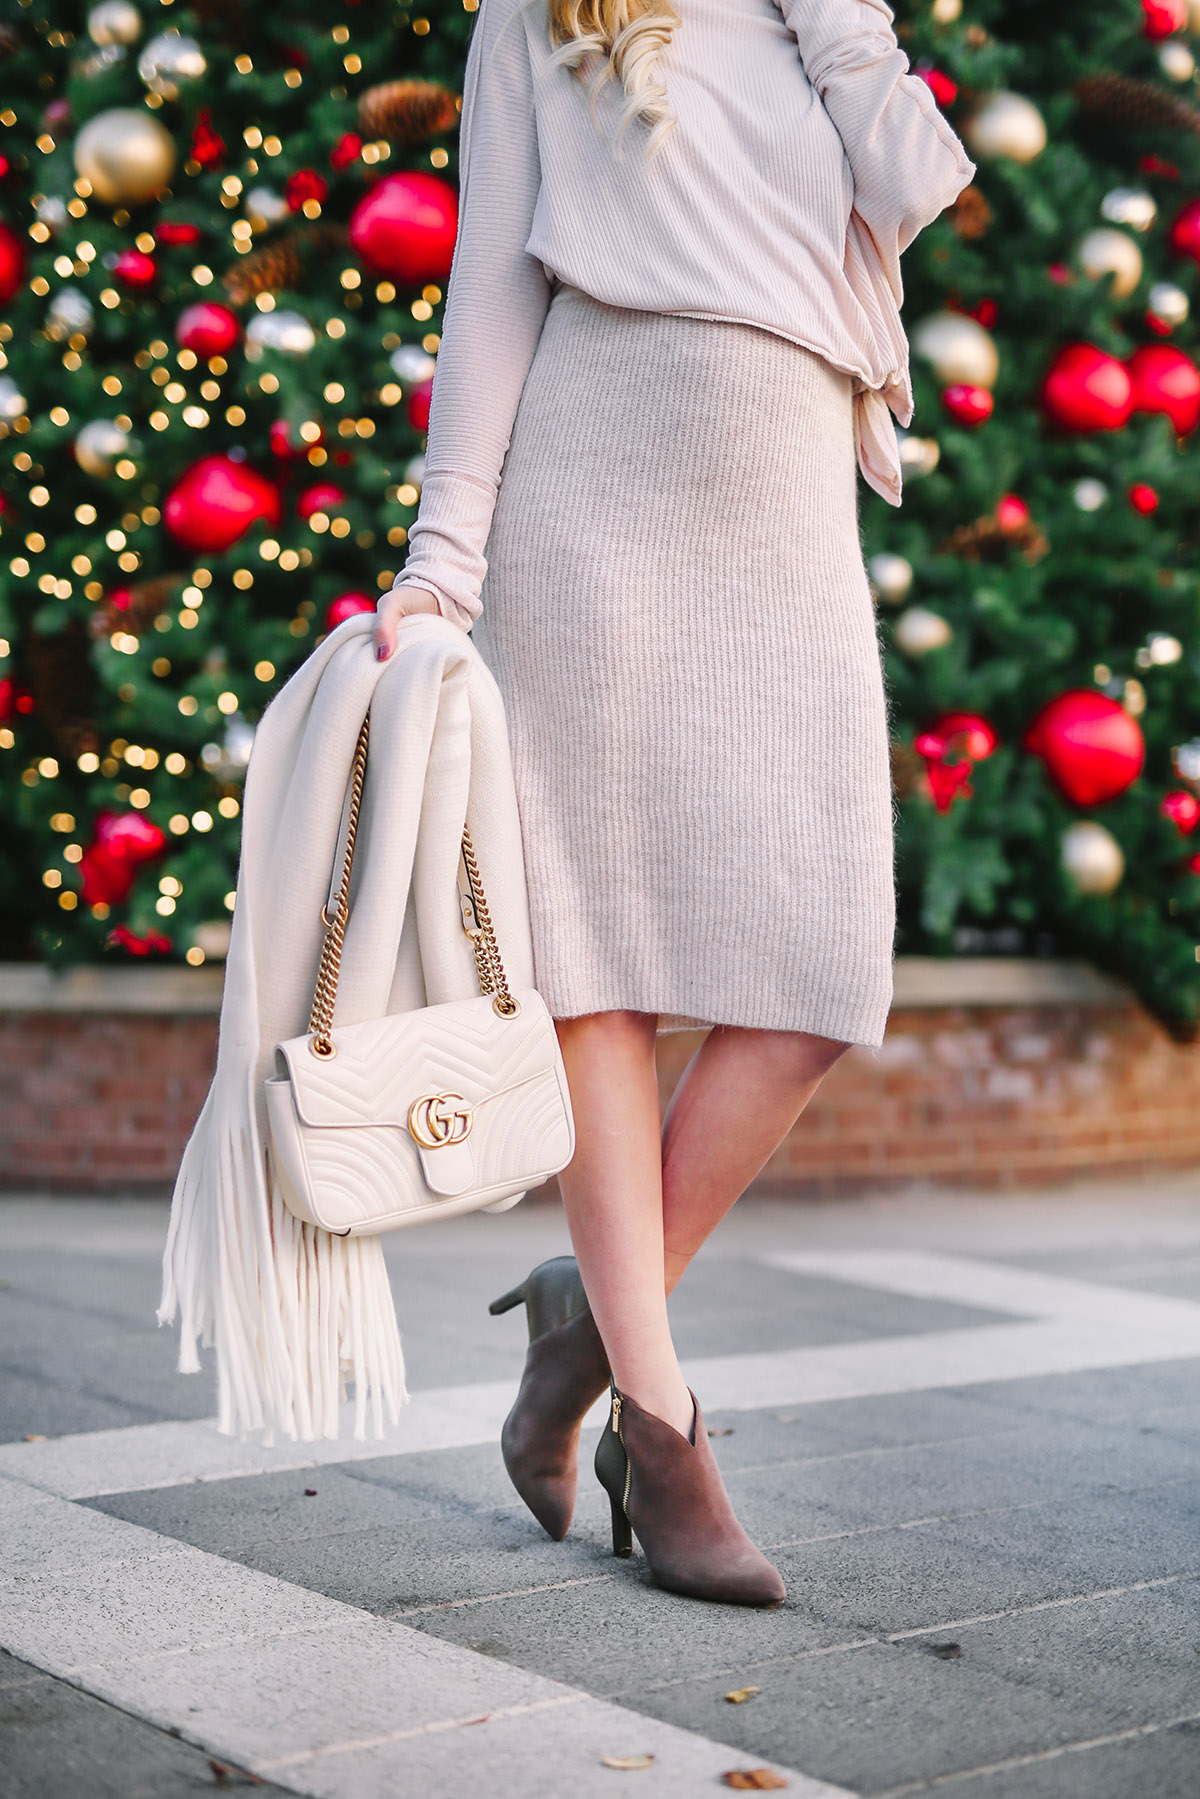 Dressy Boots for Your Holiday Outfits | Comfy and Chic Boots for Winter